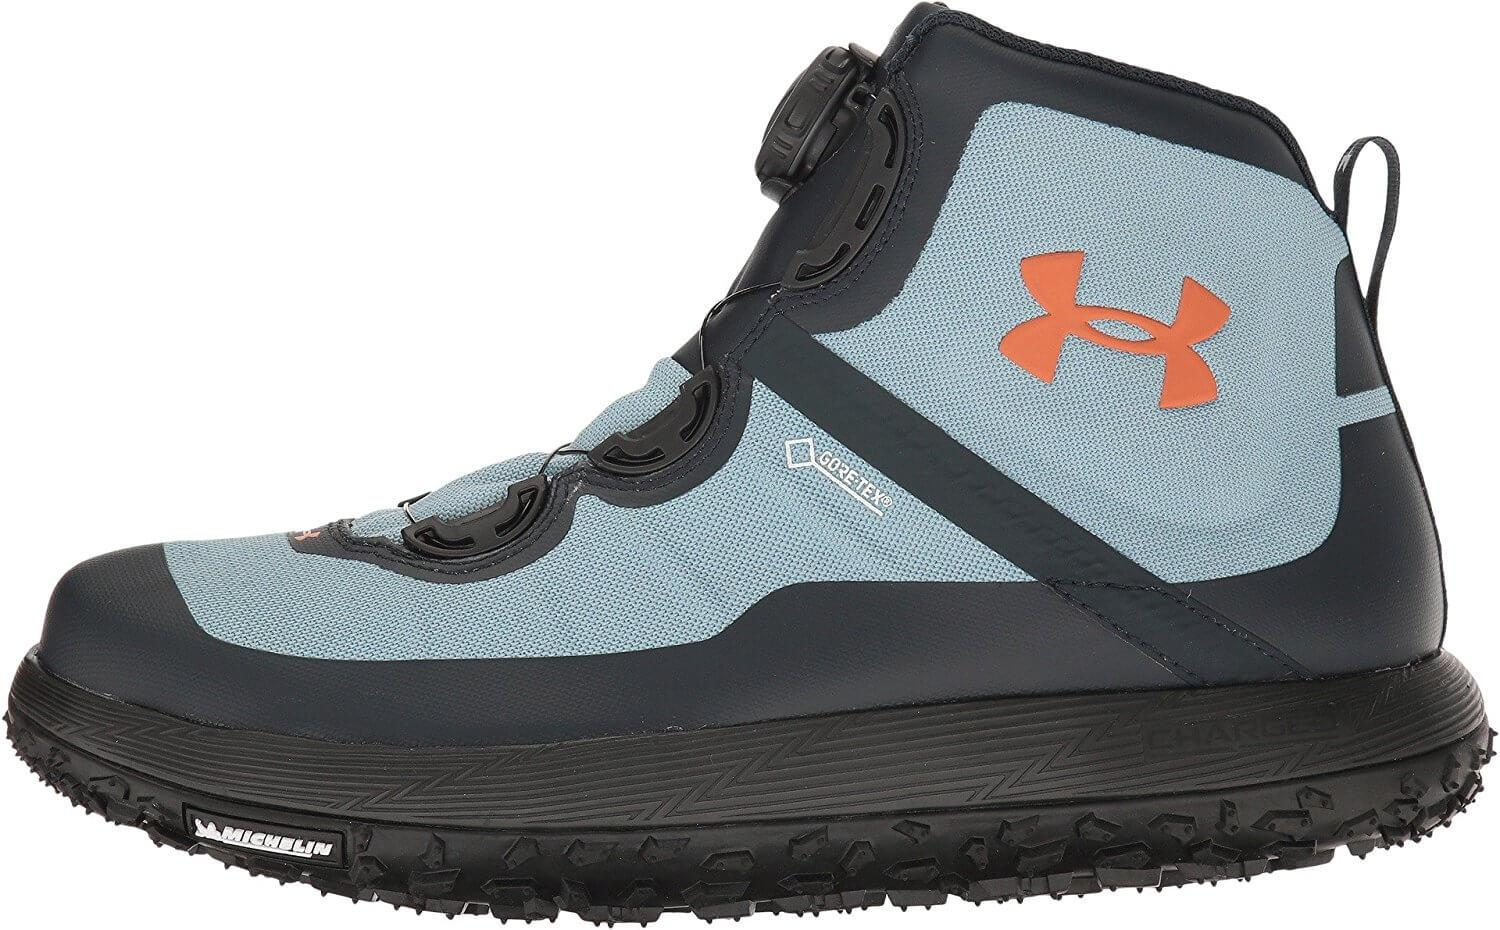 Under Armour Fat Tire GTX protects the entire foot